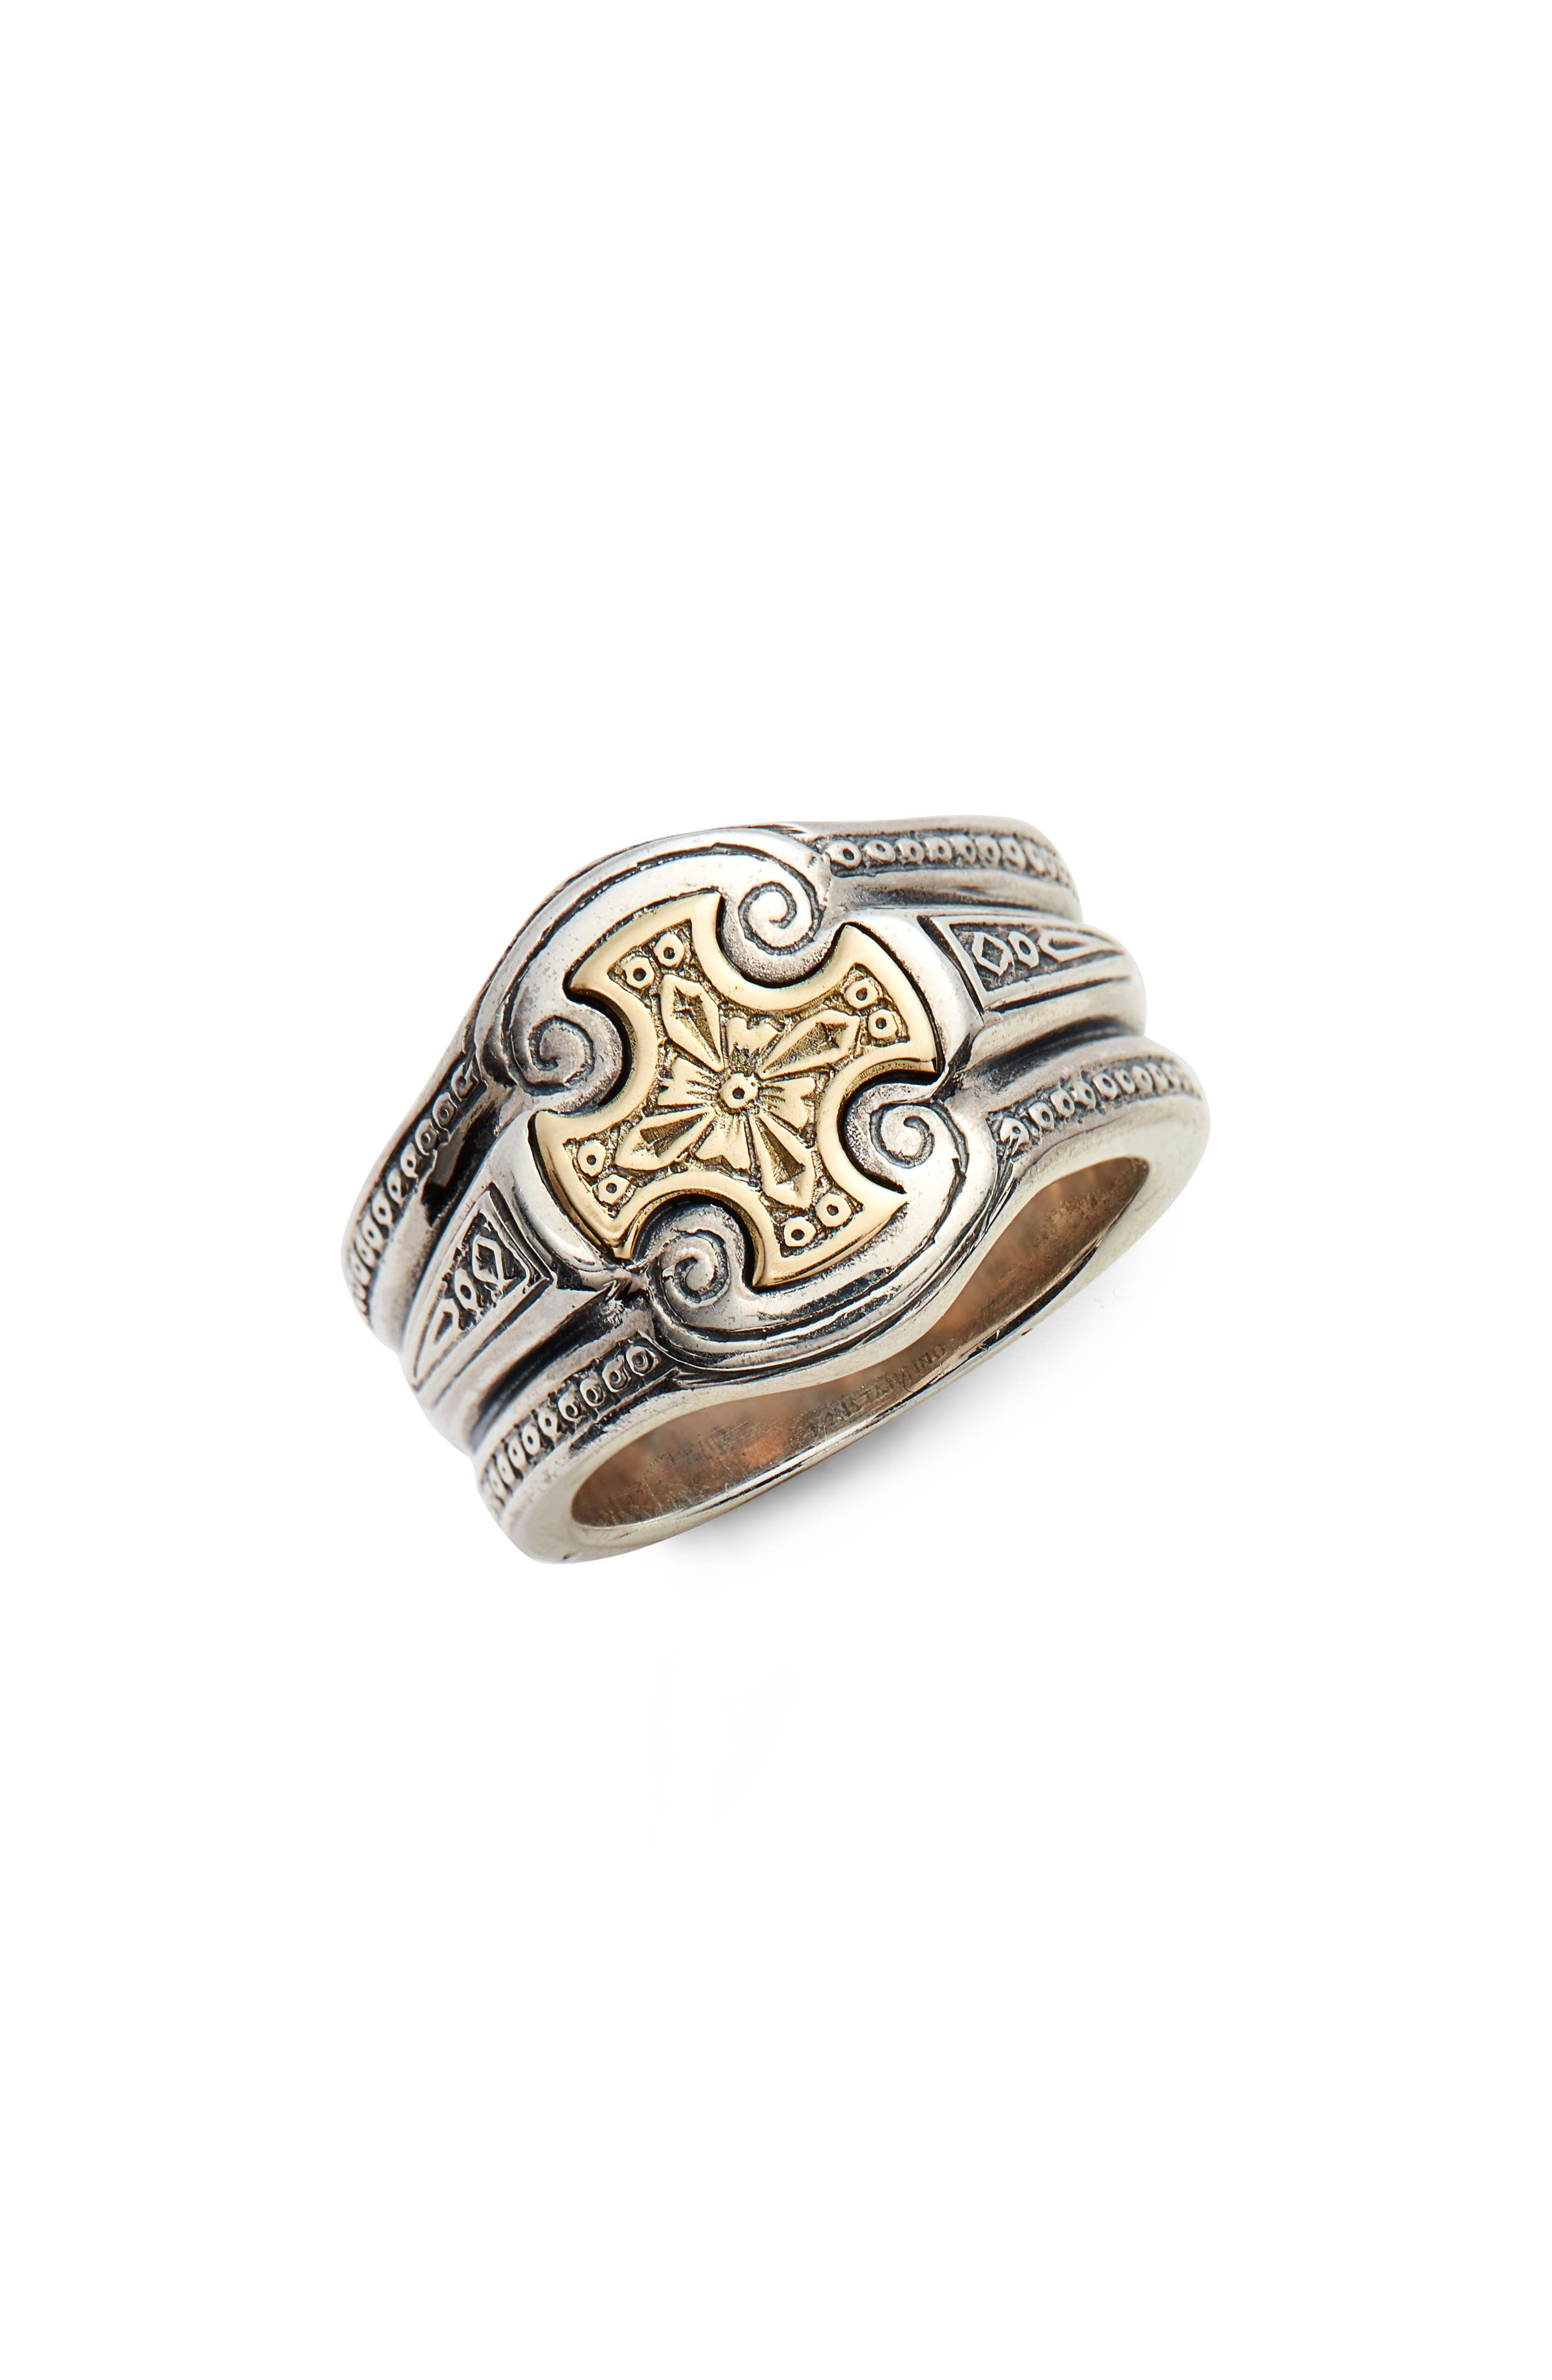 Stavros Cross Signet Ring,                             Main thumbnail 1, color,                             SILVER/ GOLD